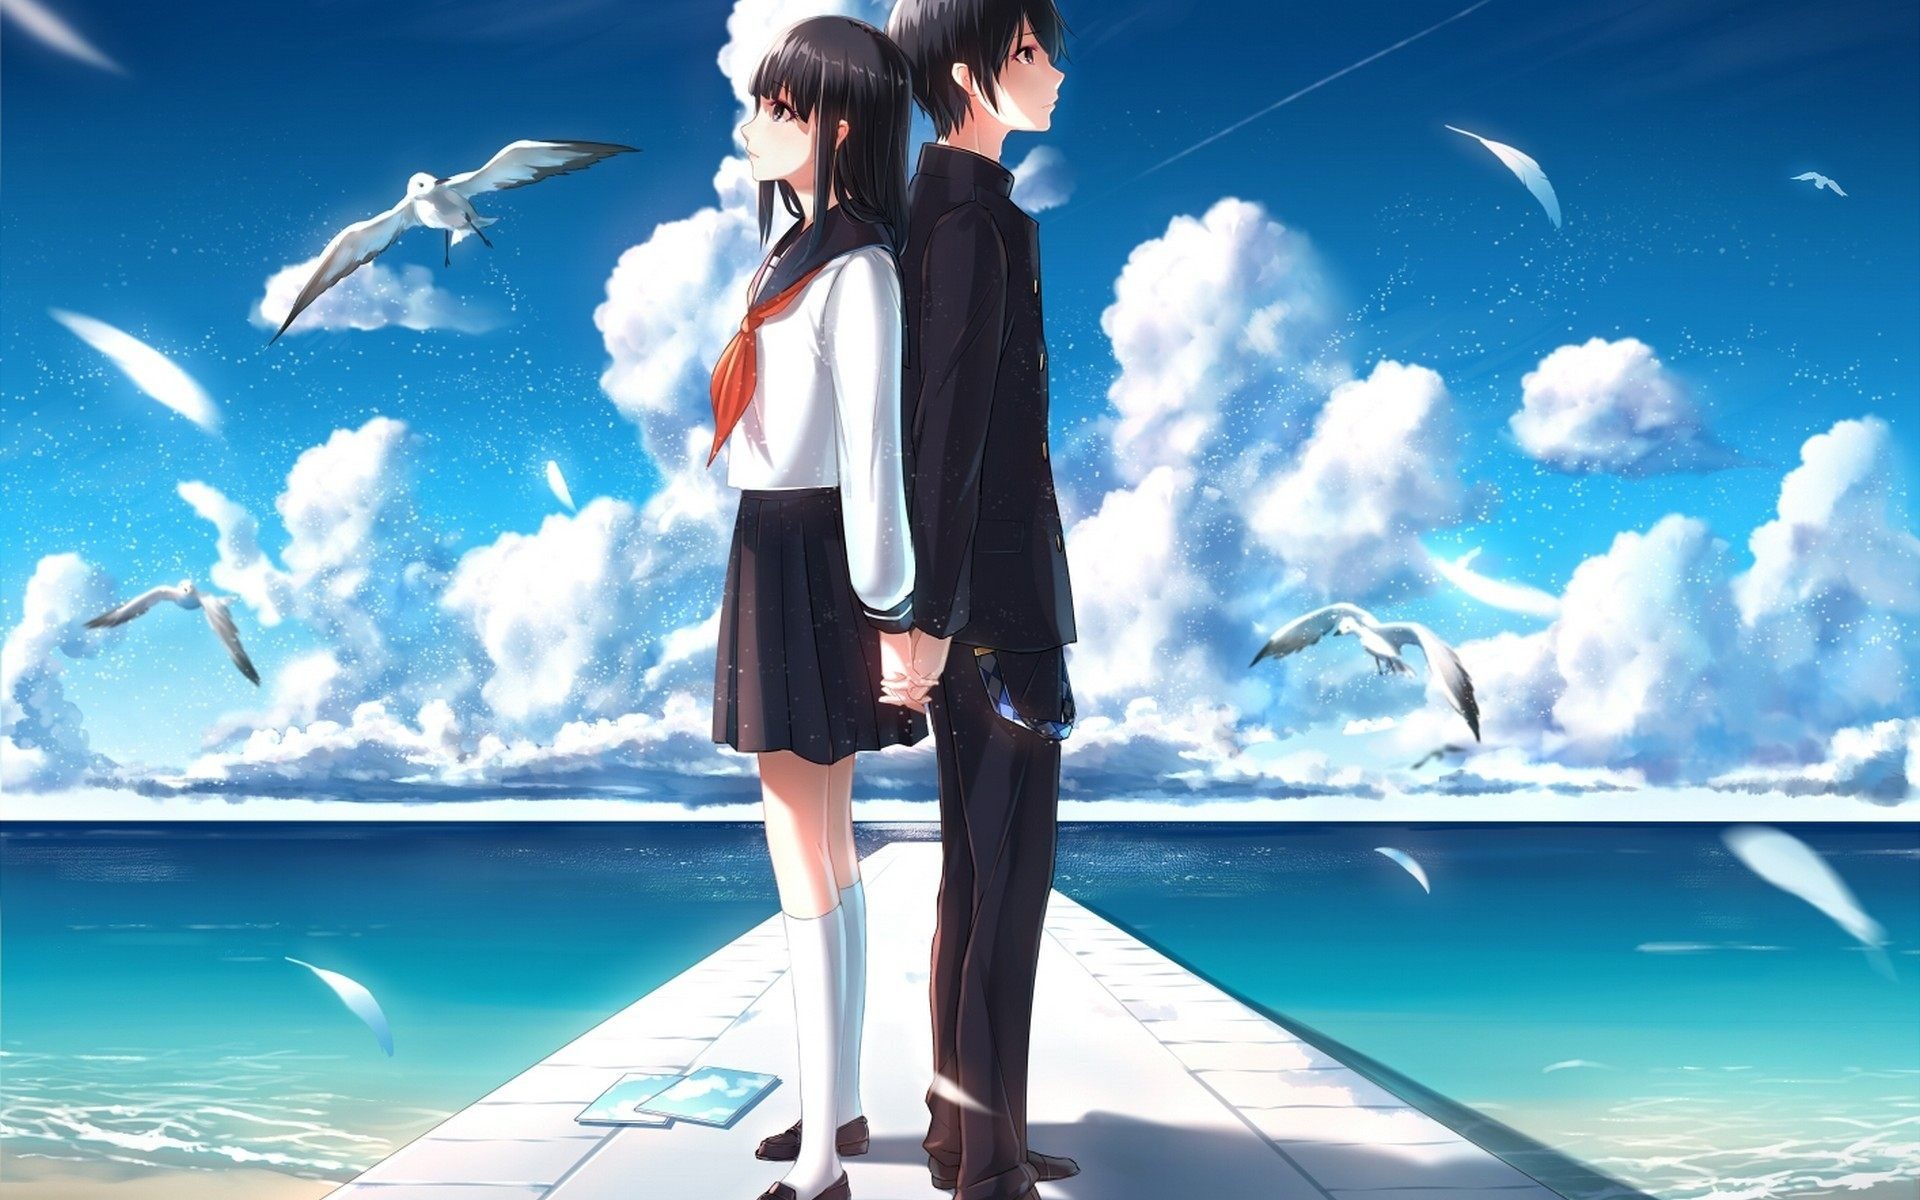 Anime Boy And Girl Love Wallpaper Hd For Desktop And Mobile Anime Romance Anime Wallpaper Anime Wallpaper Download